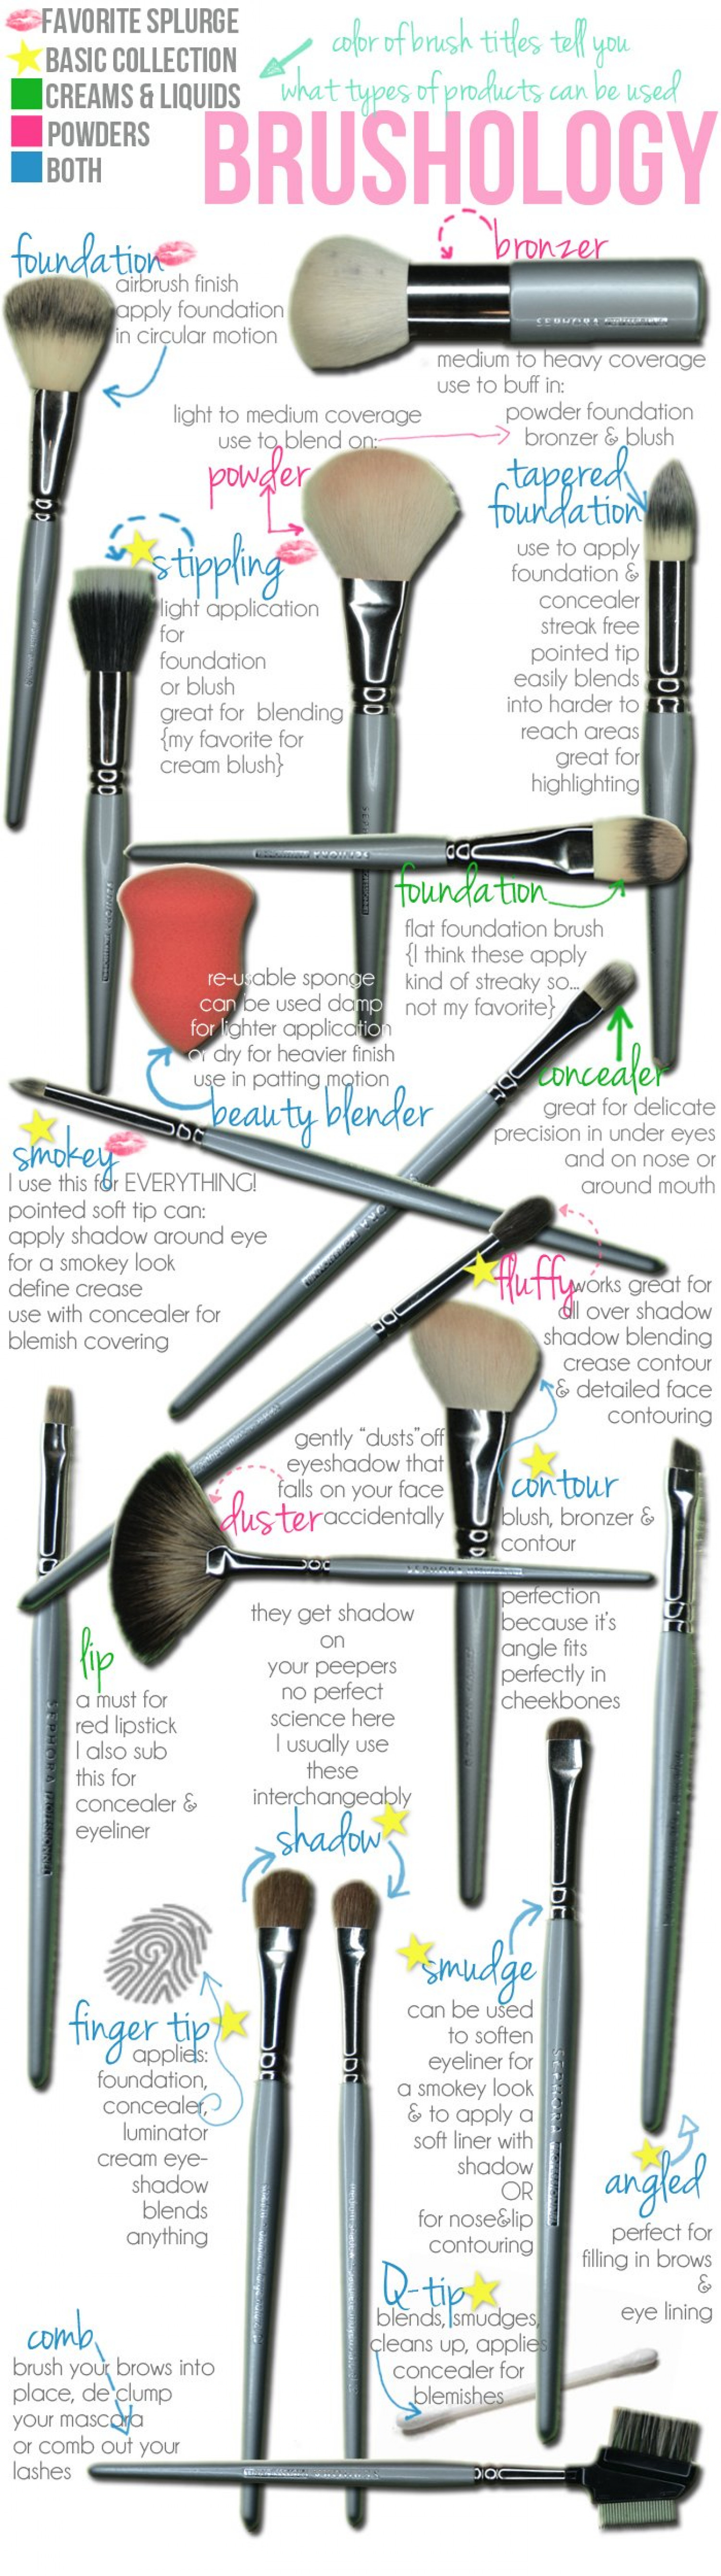 Brushology - Brief overview of makeup brushes Infographic